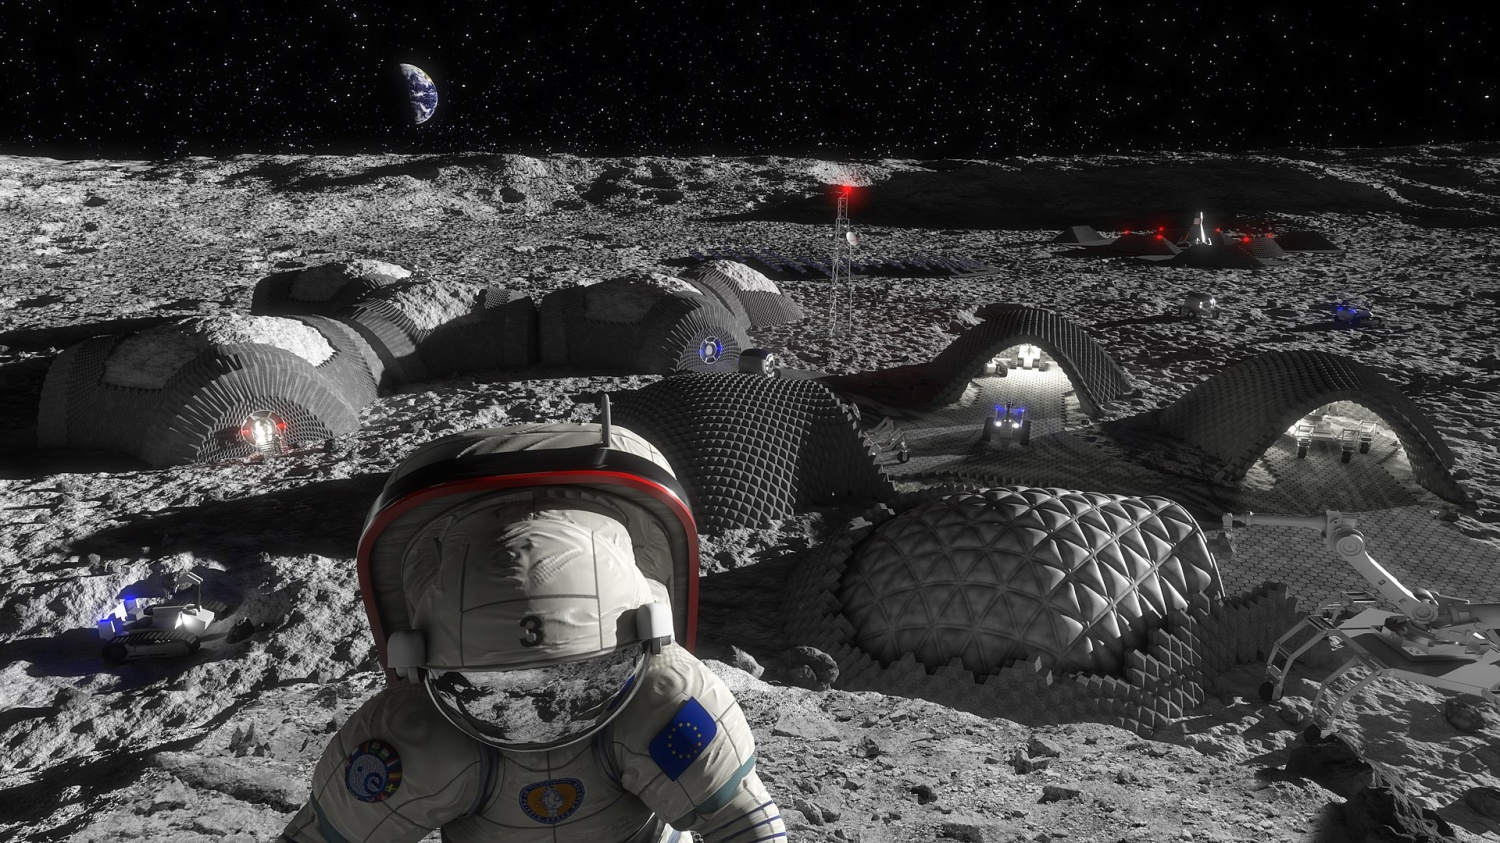 Living on the Lunar Surface and the Red Planet: Challenges Humans May Face